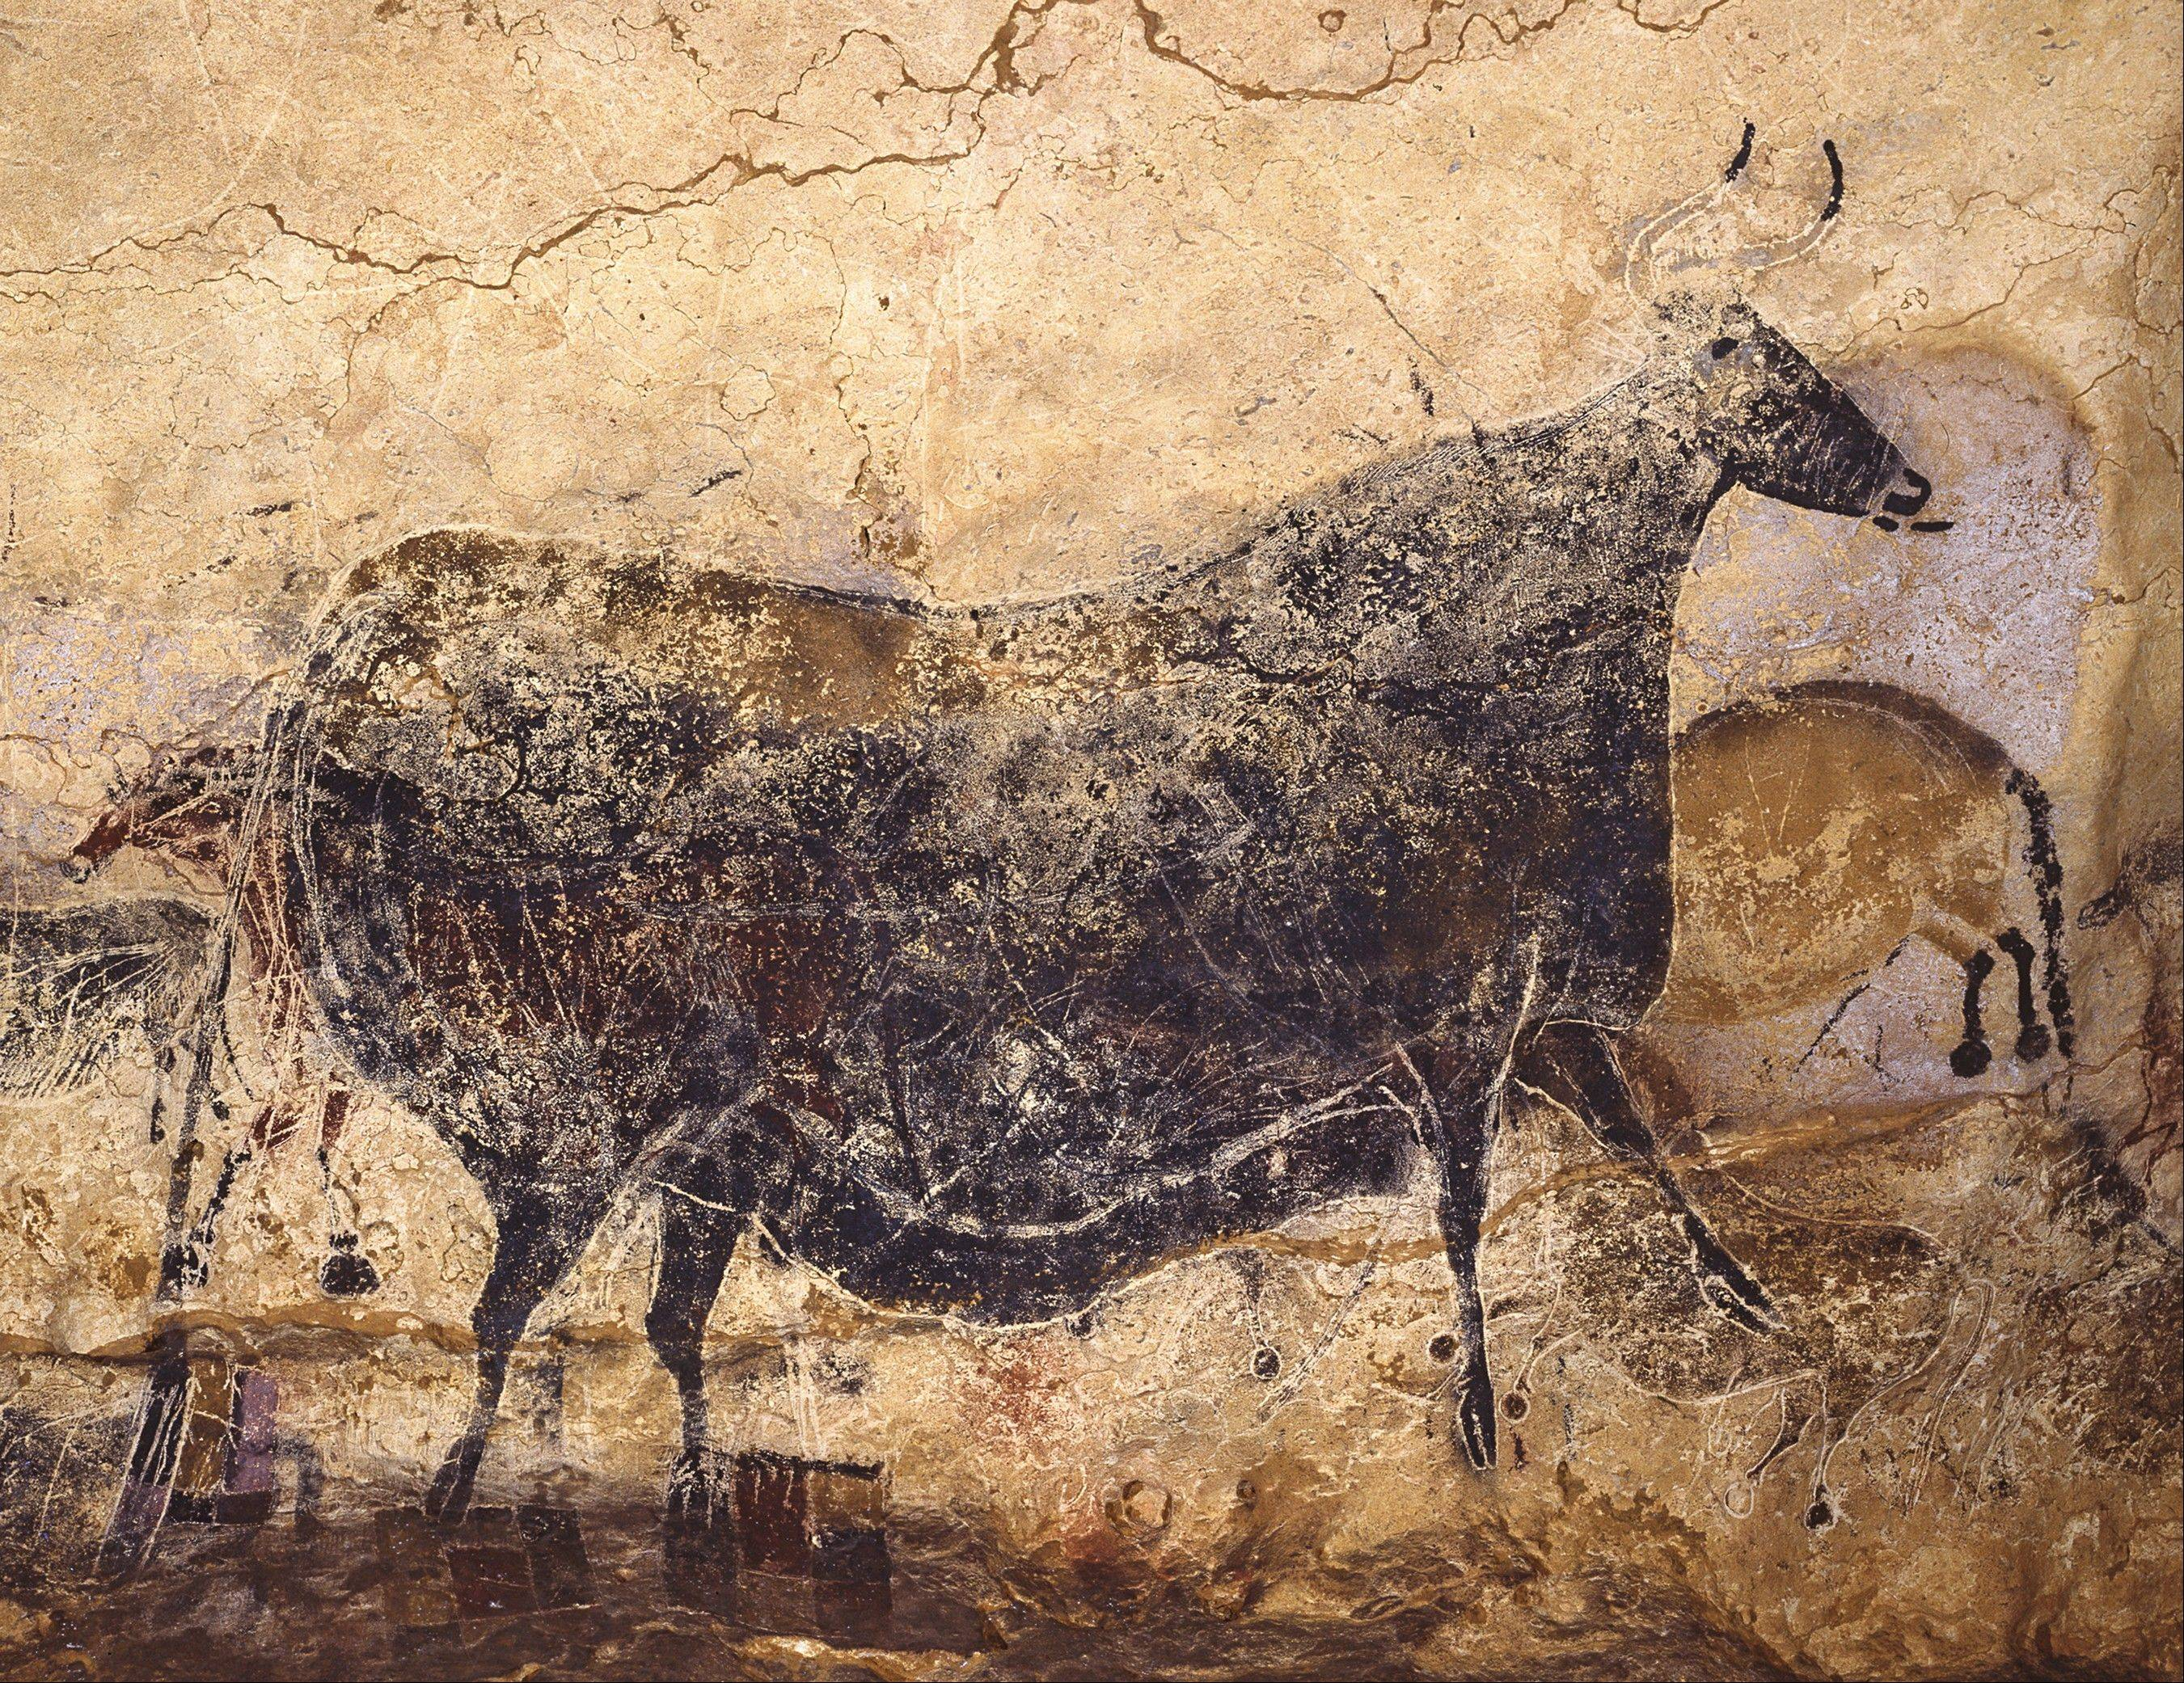 The black cow, found in Lascaux's main gallery illustrates the way the cave was not simply painted once and left, but painted, and repainted over generations. Behind the black cow, you can see traces of other animals that were since painted over.